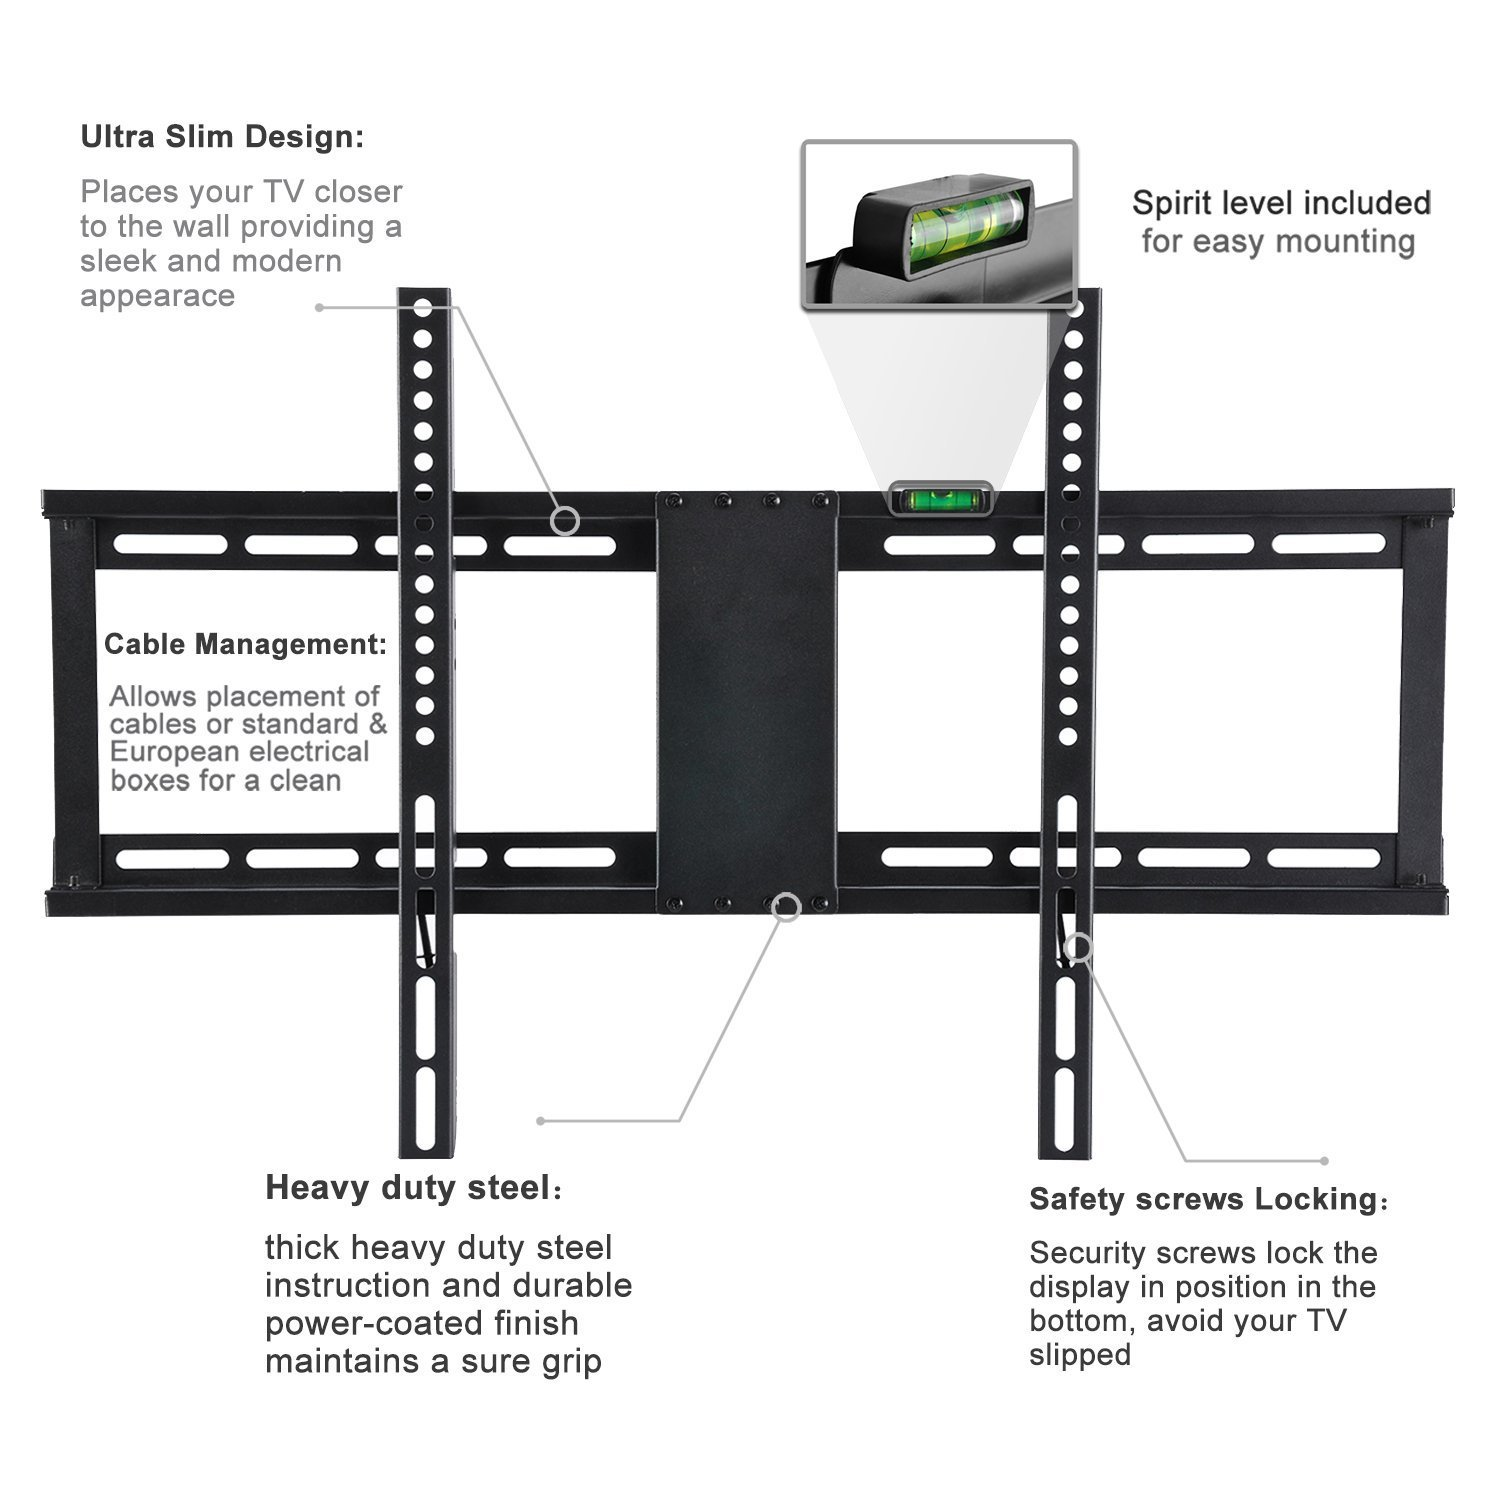 Low profile fixed tv wall mount bracket for 32 75 samsung sony low profile fixed tv wall mount bracket for 32 75 samsung sony vizio lg sharp panasonic led lcd oled plasma flat screen tvs only 1 from the wall pooptronica